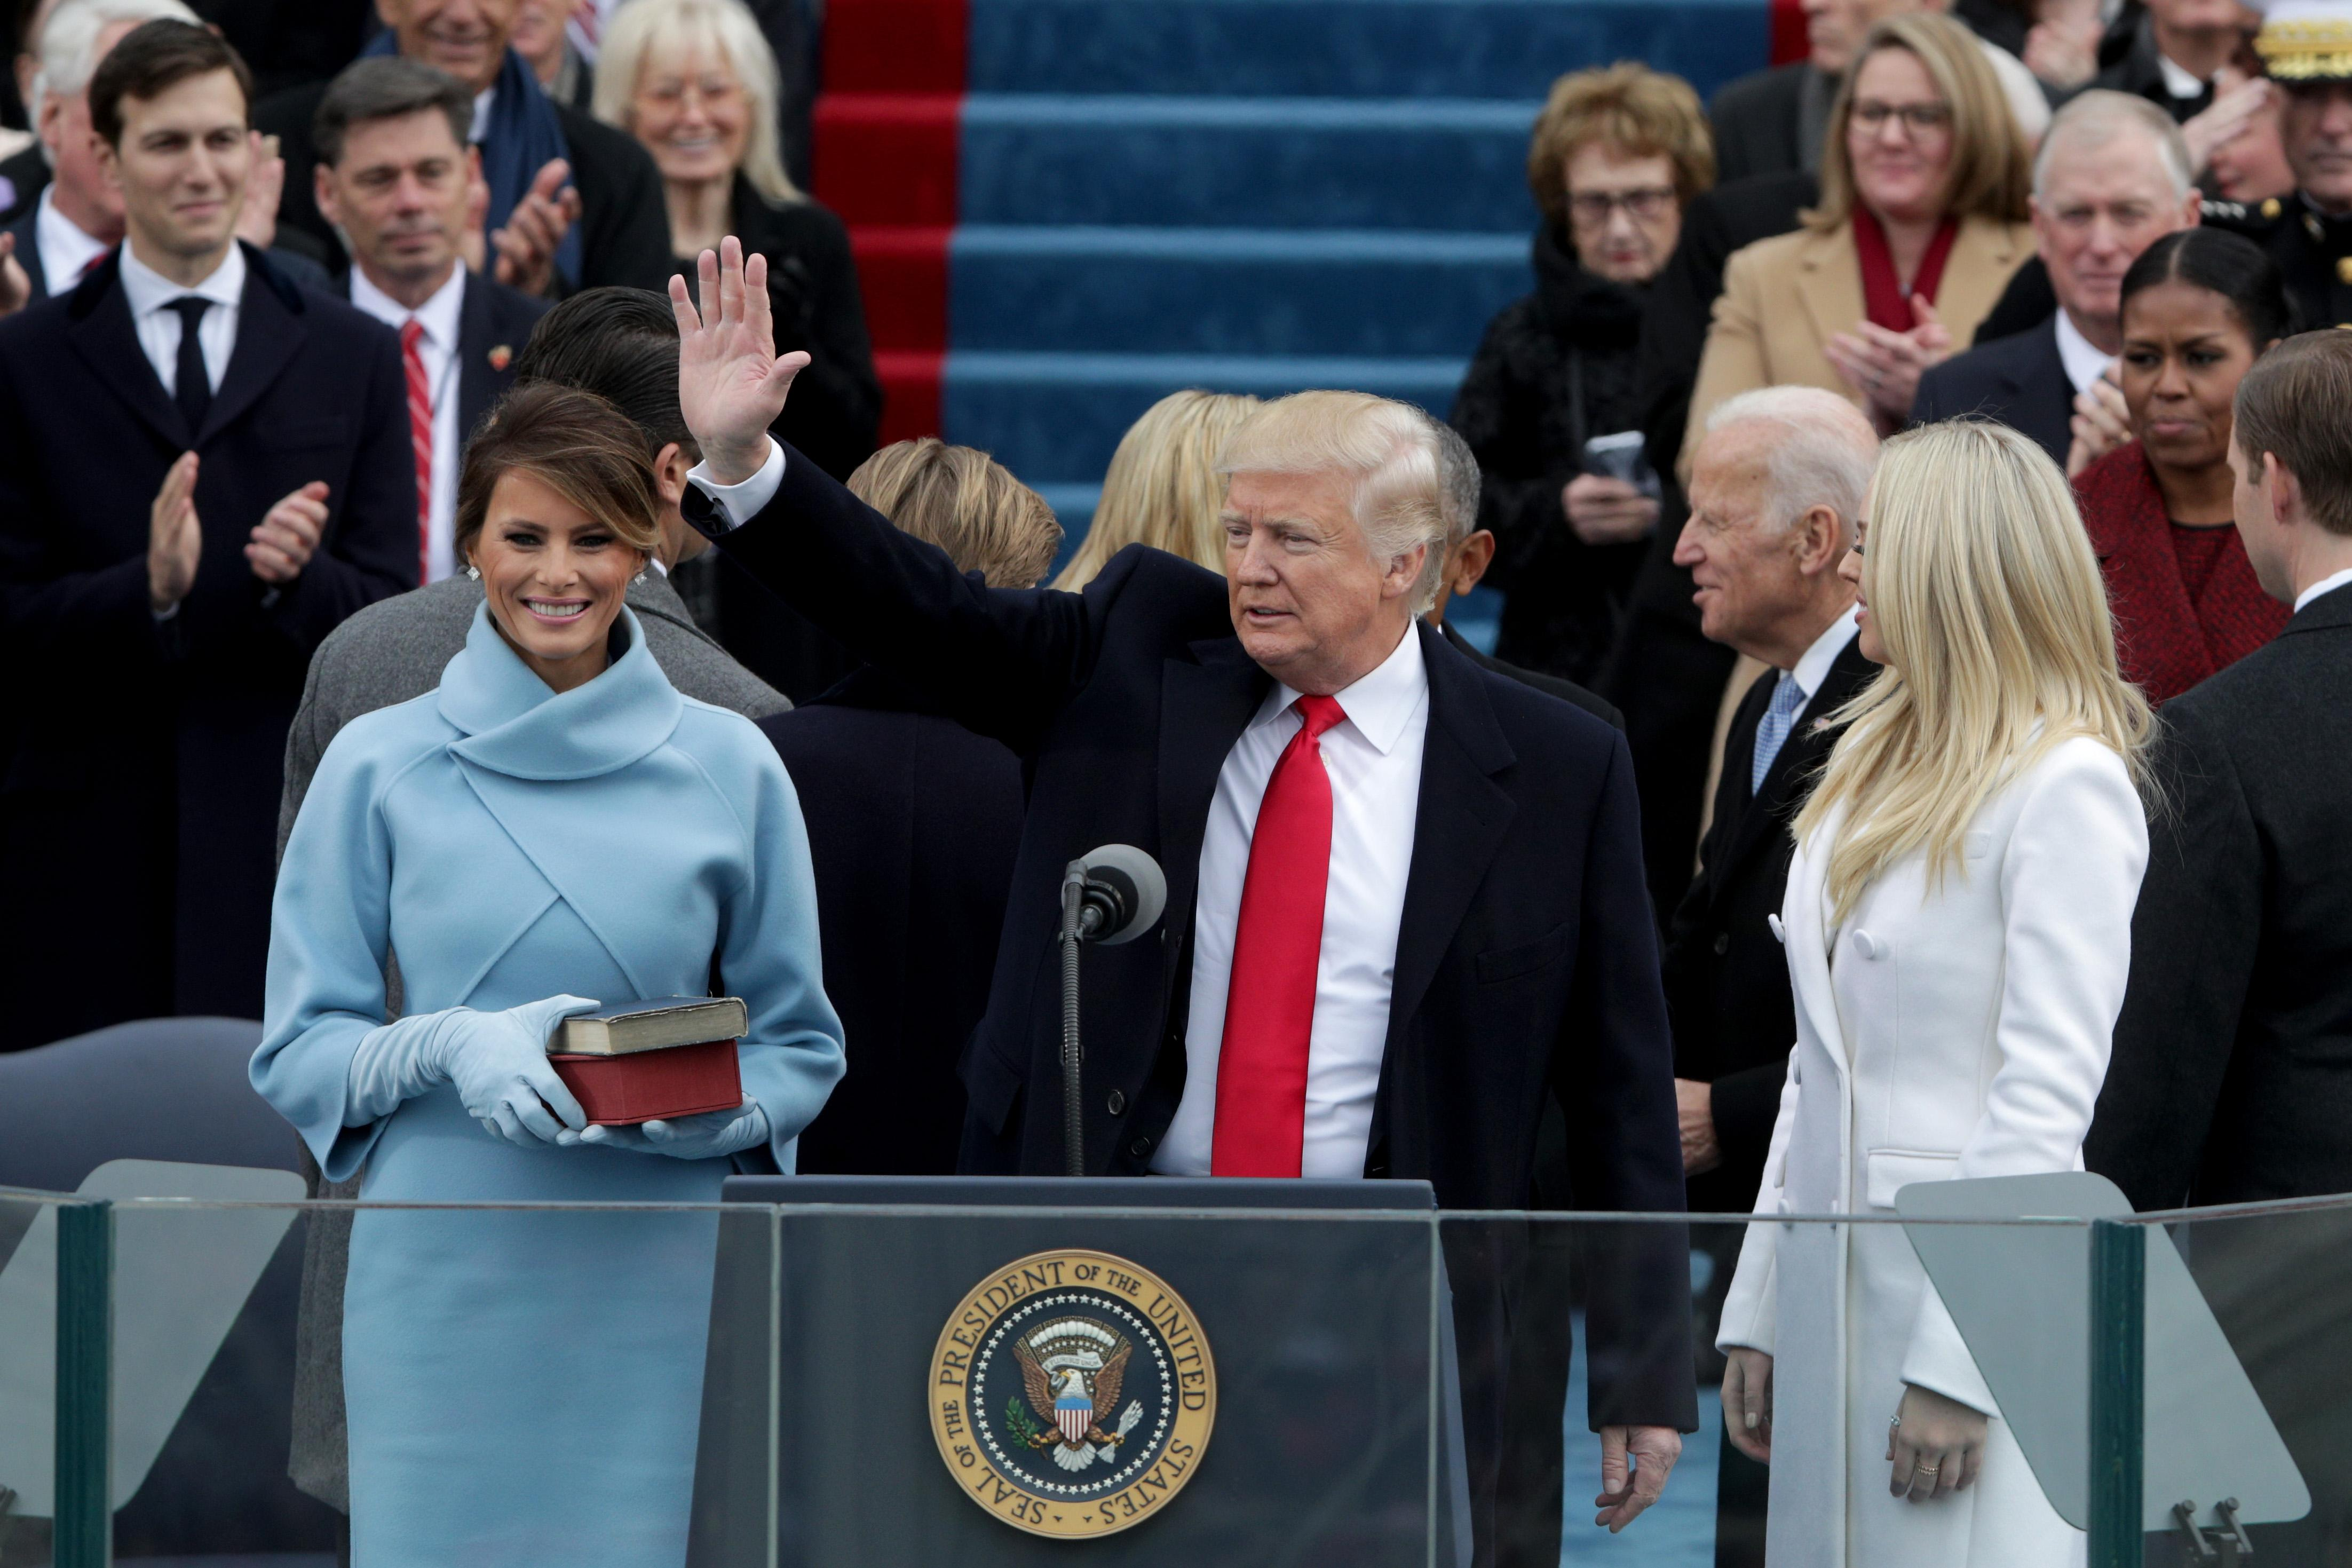 Trump waves at his inauguration. Melania stands next to him, holding books. On the other side, his daughter Tiffany looks around.